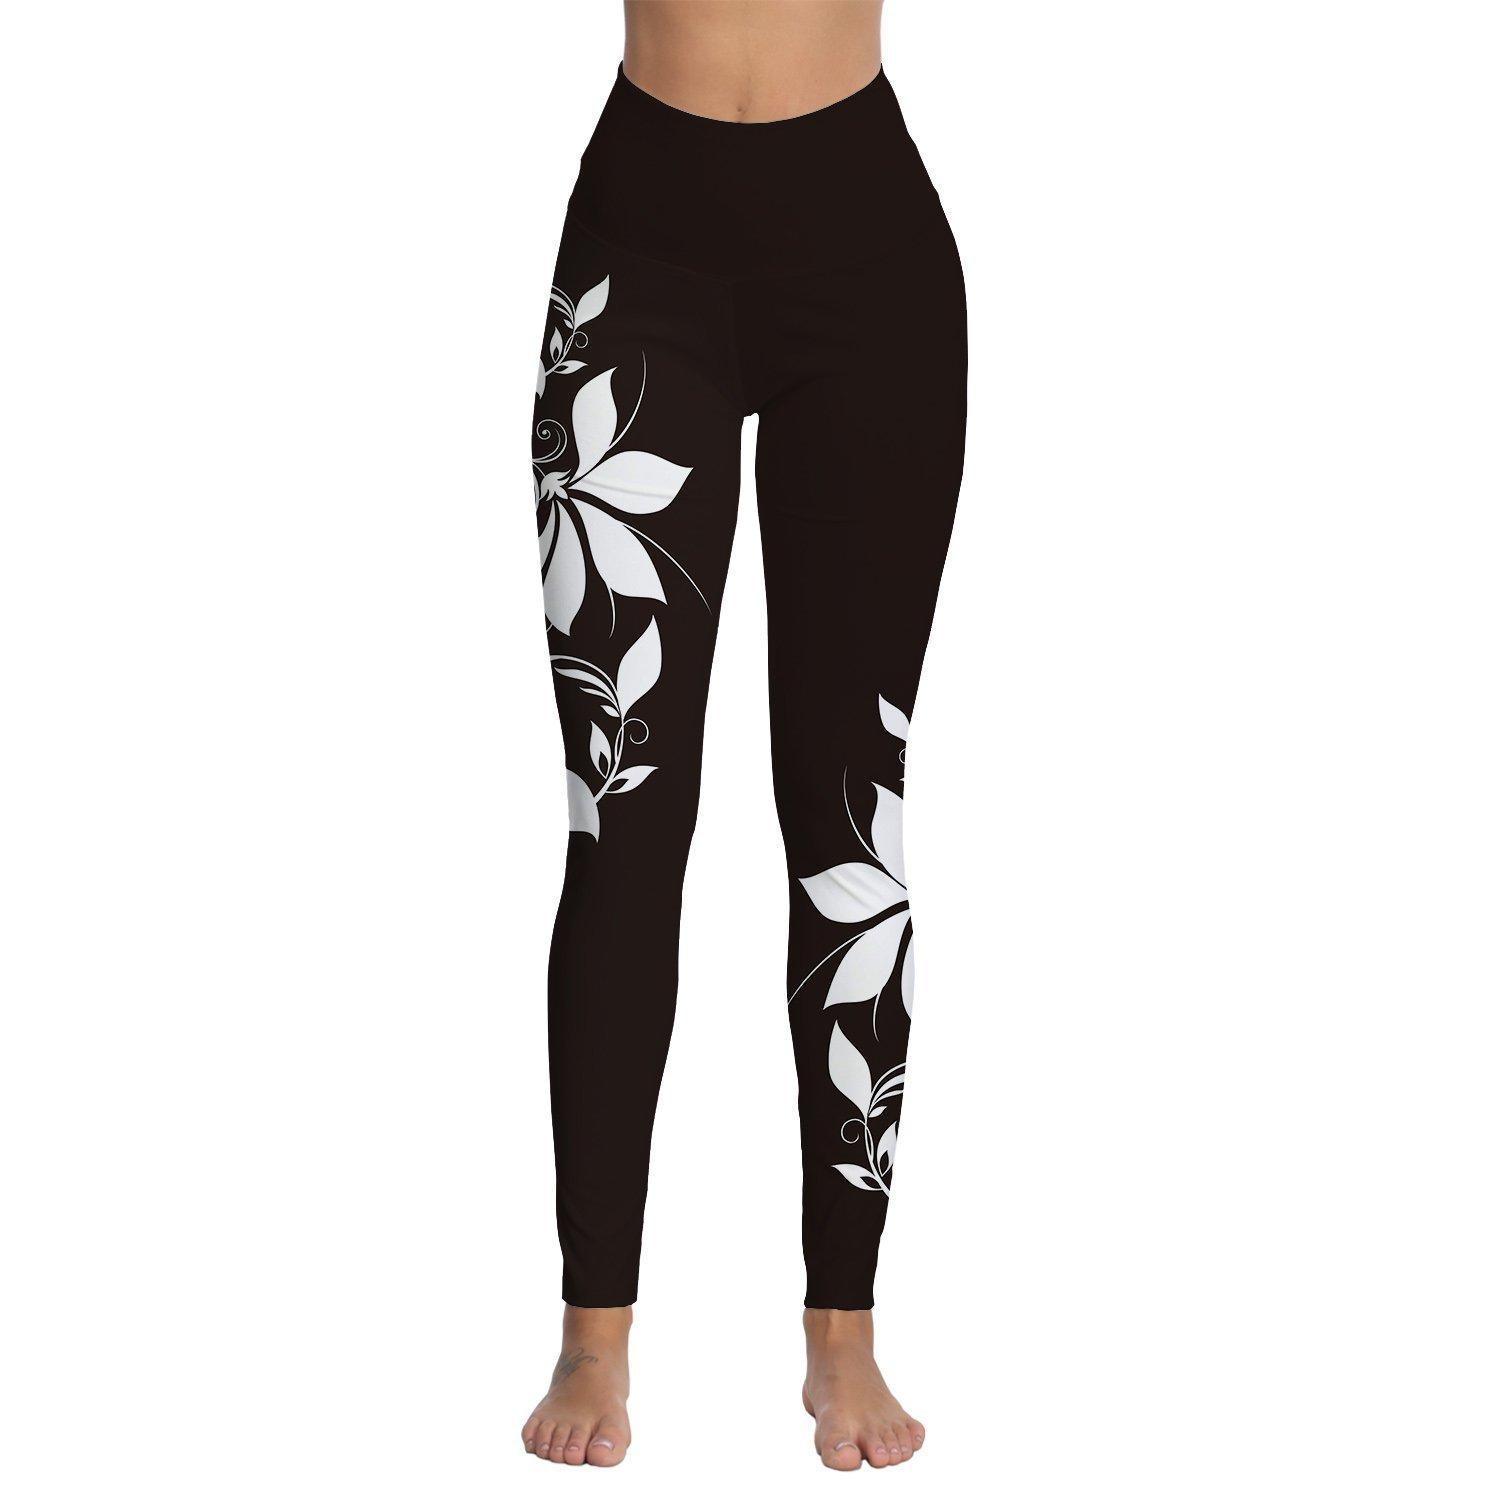 cd52f592b6cc32 2019 Womens White Floral Printed High Waist Workout Leggings Skinny Tummy  Control Yoga Pants From Annuum, $31.69 | DHgate.Com